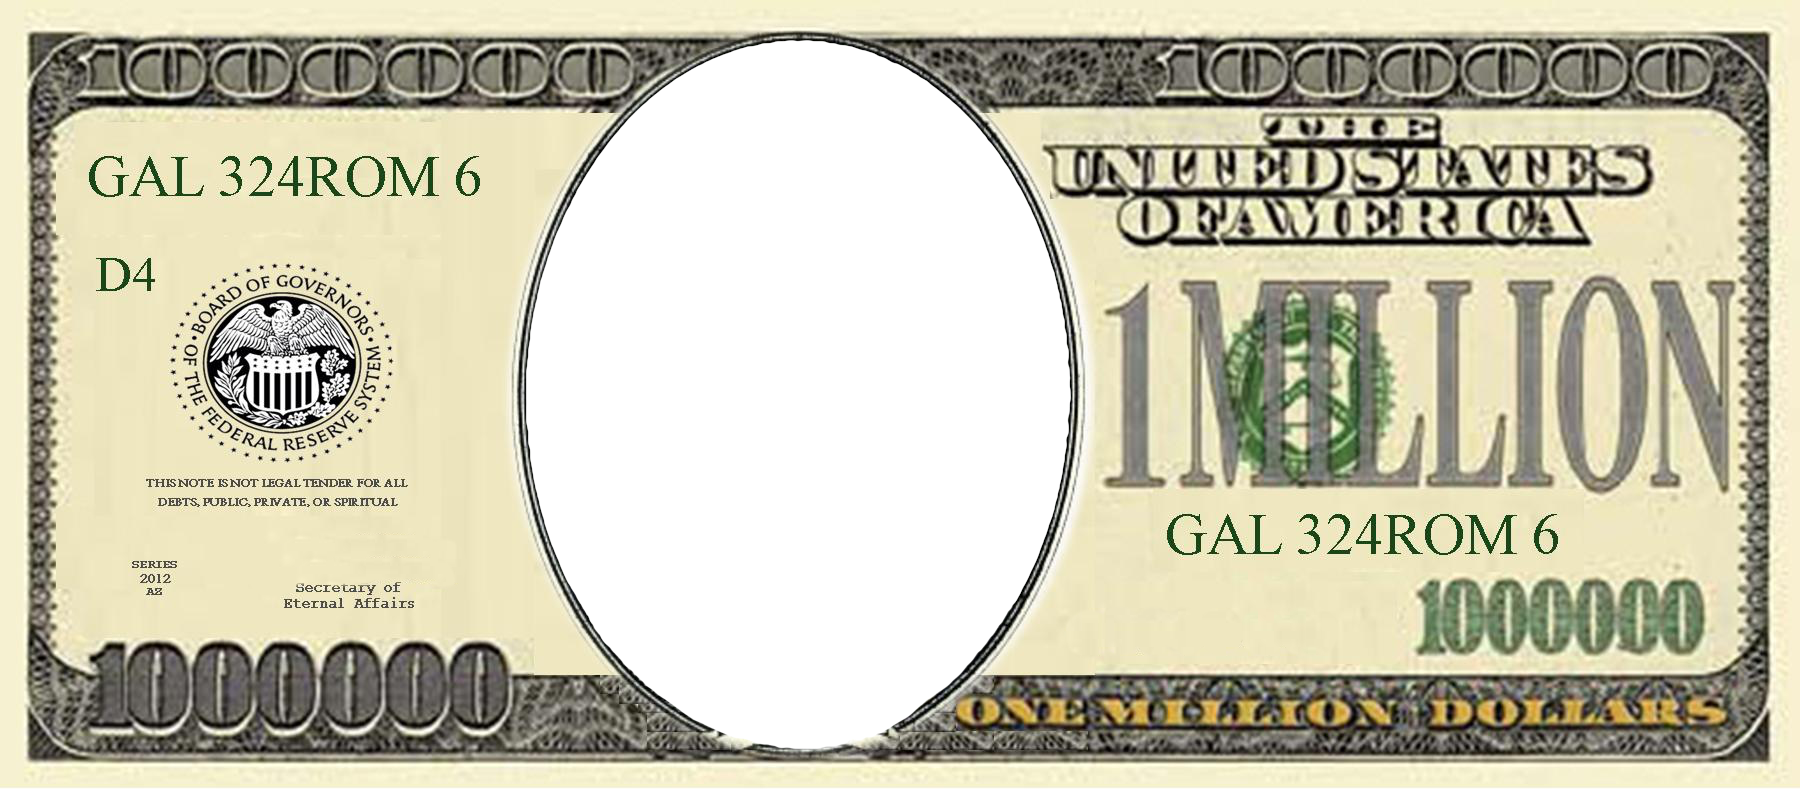 Fake transparent images pluspng. Monopoly money png